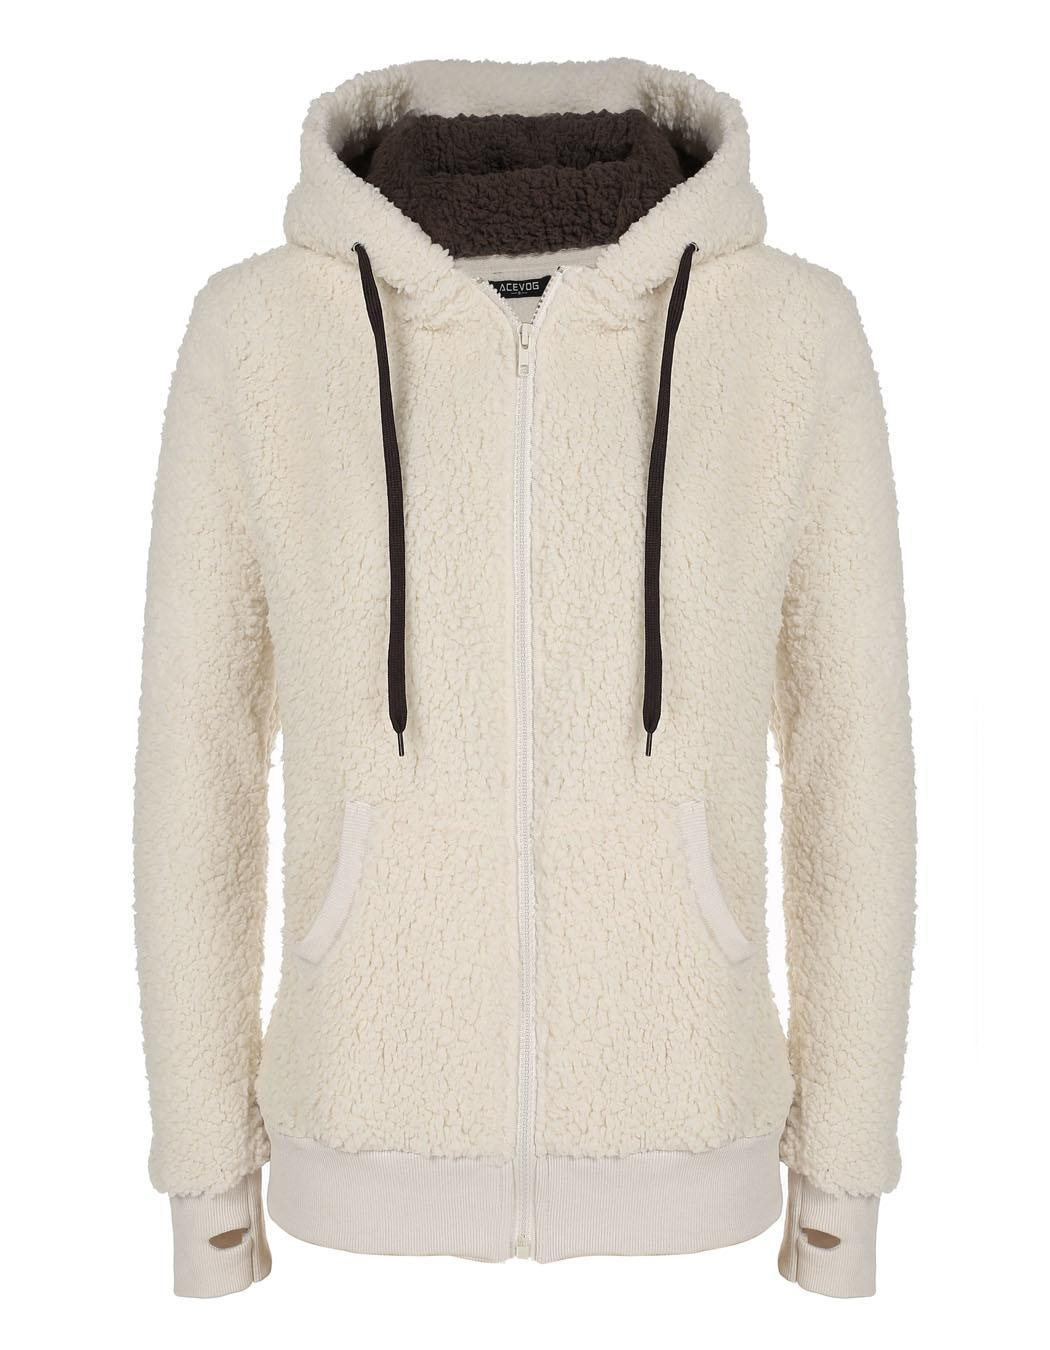 Women Soft Fleece Hooded Jacket Coat 3